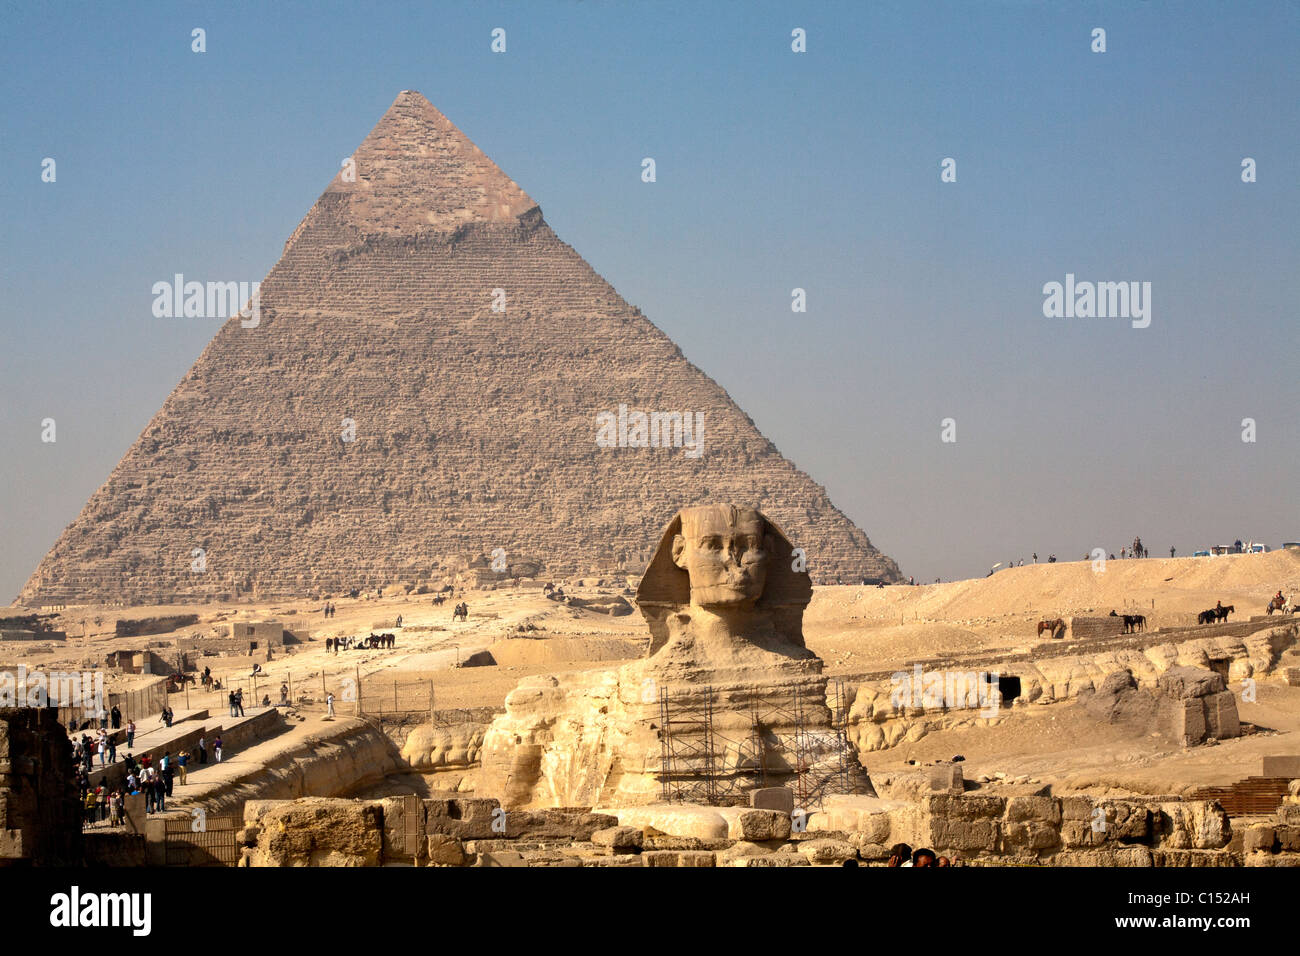 The morning smoke clears to view both the Great Sphinx of Giza and the Pyramid of Khafre (Chephren) in Egypt - Stock Image